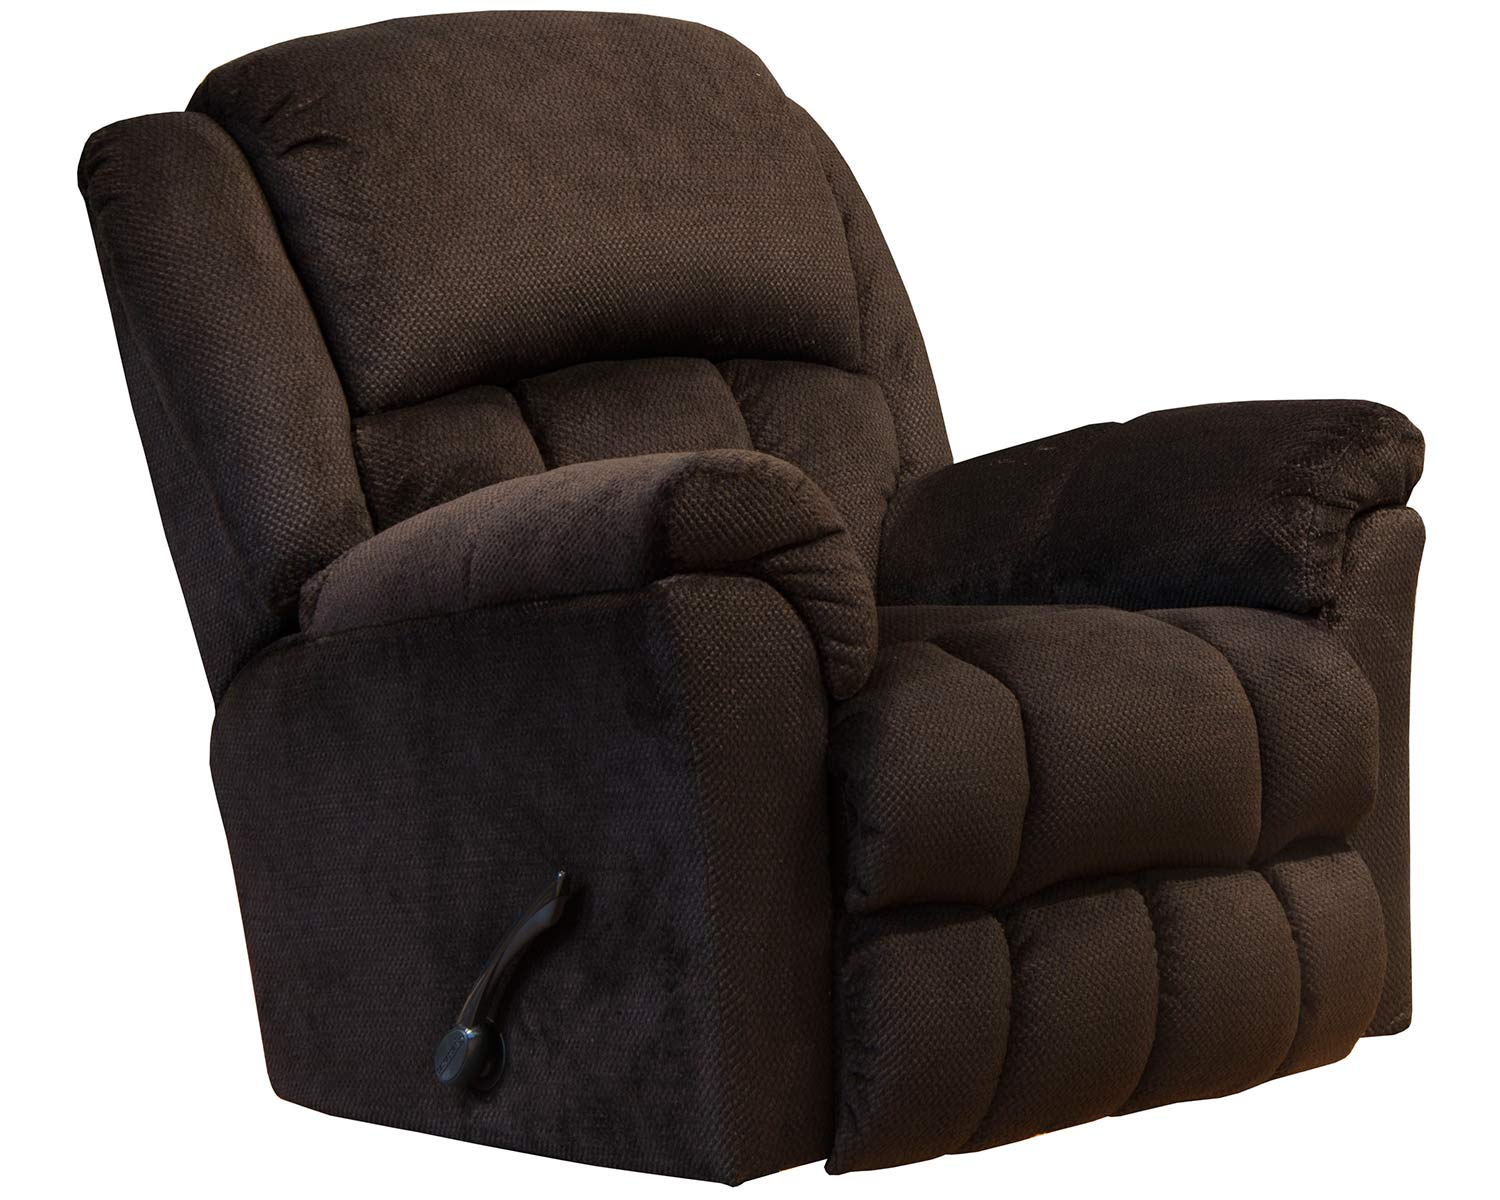 CatNapper Bingham Rocker Recliner Chair - Chocolate